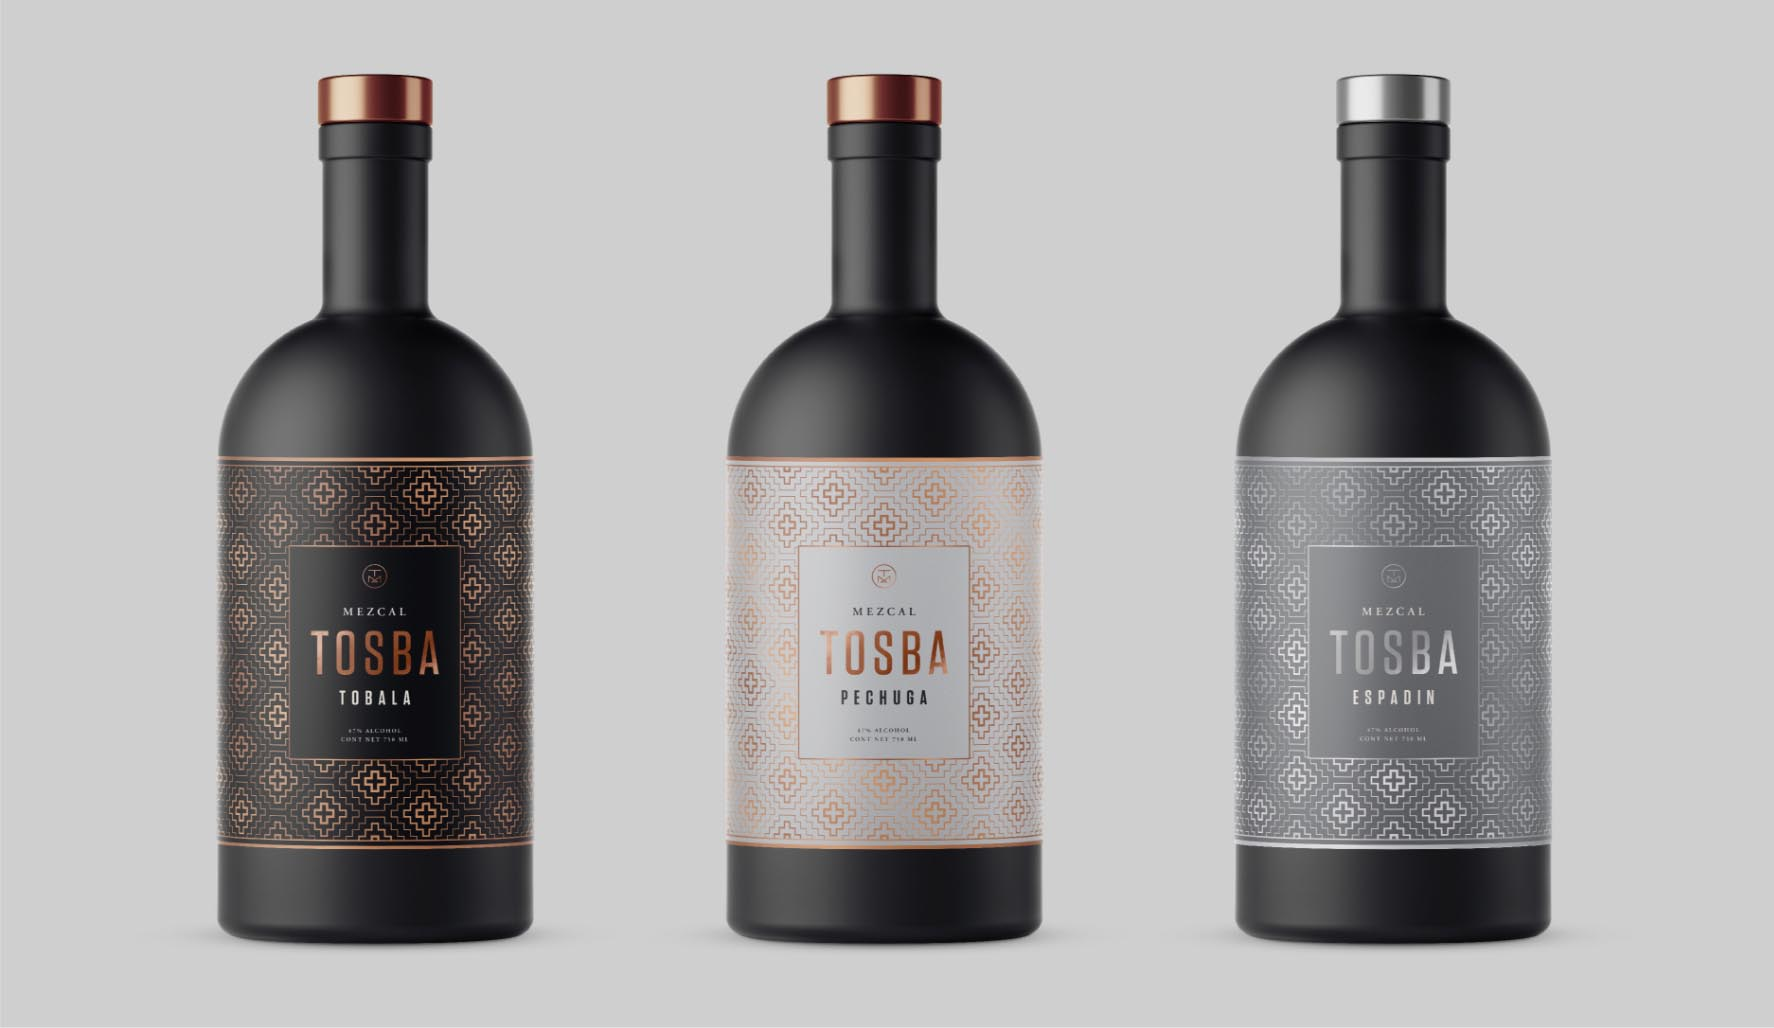 Mezcal Tosba Packaging Design Bottle Design